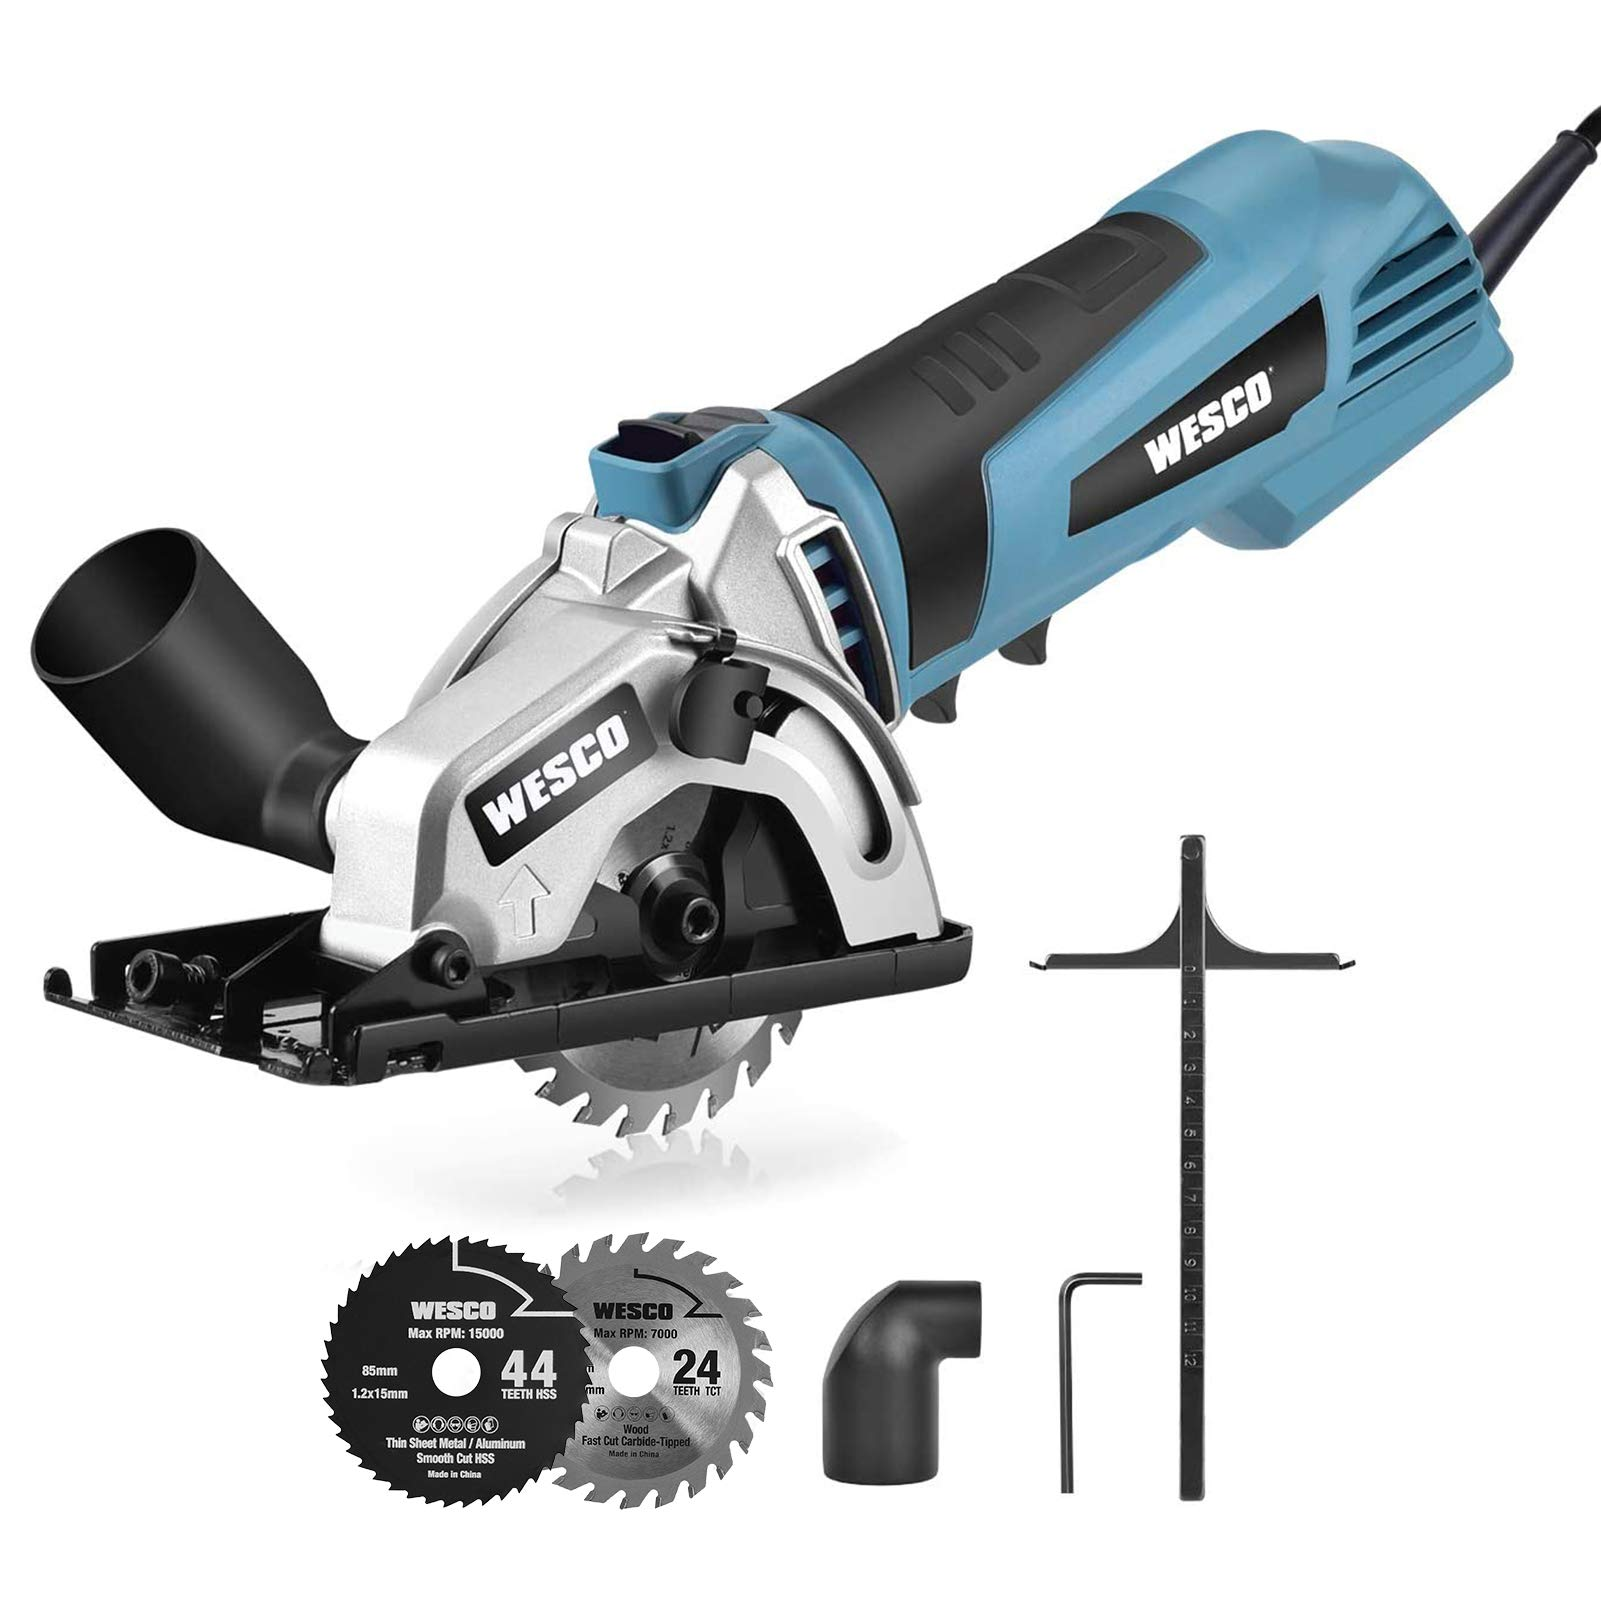 Mini Circular Saw, WESCO 500W 5100 RPM Compact Circular Saw with 2 Saw Blades Cutting Depth 27mm for Wood, Soft Metal, Tile and Plastic Cuts /WS3453